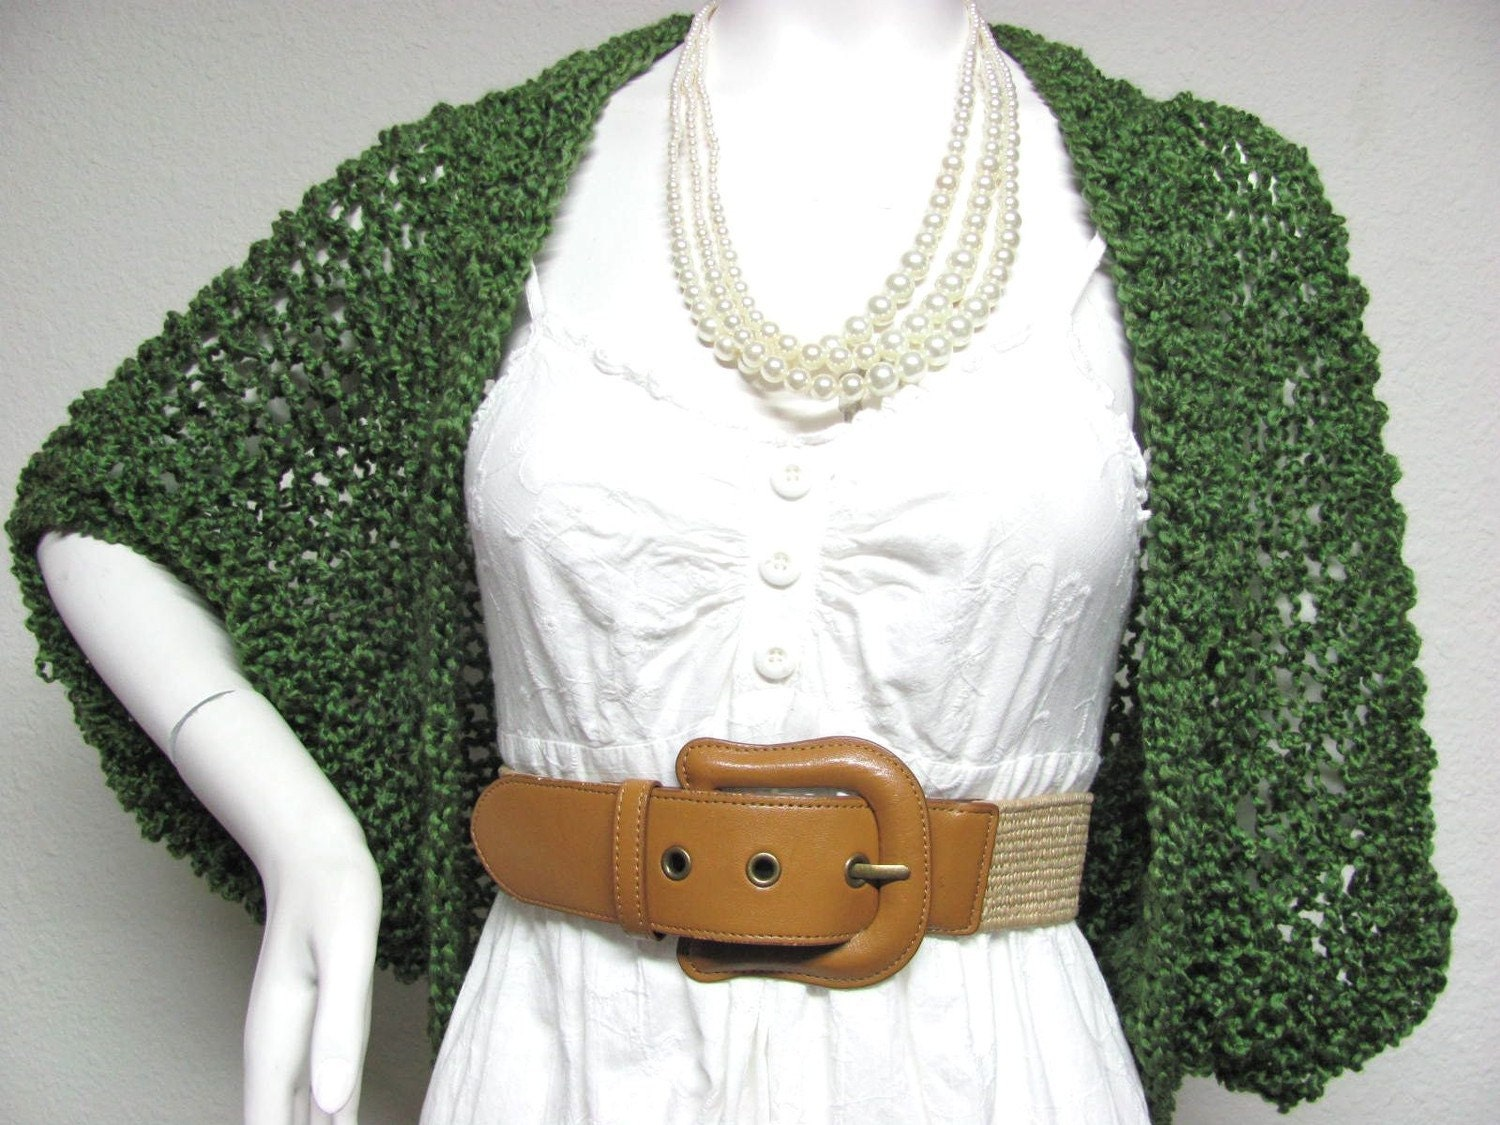 Crochet Shrug - Compare Prices, Reviews and Buy at Nextag - Price